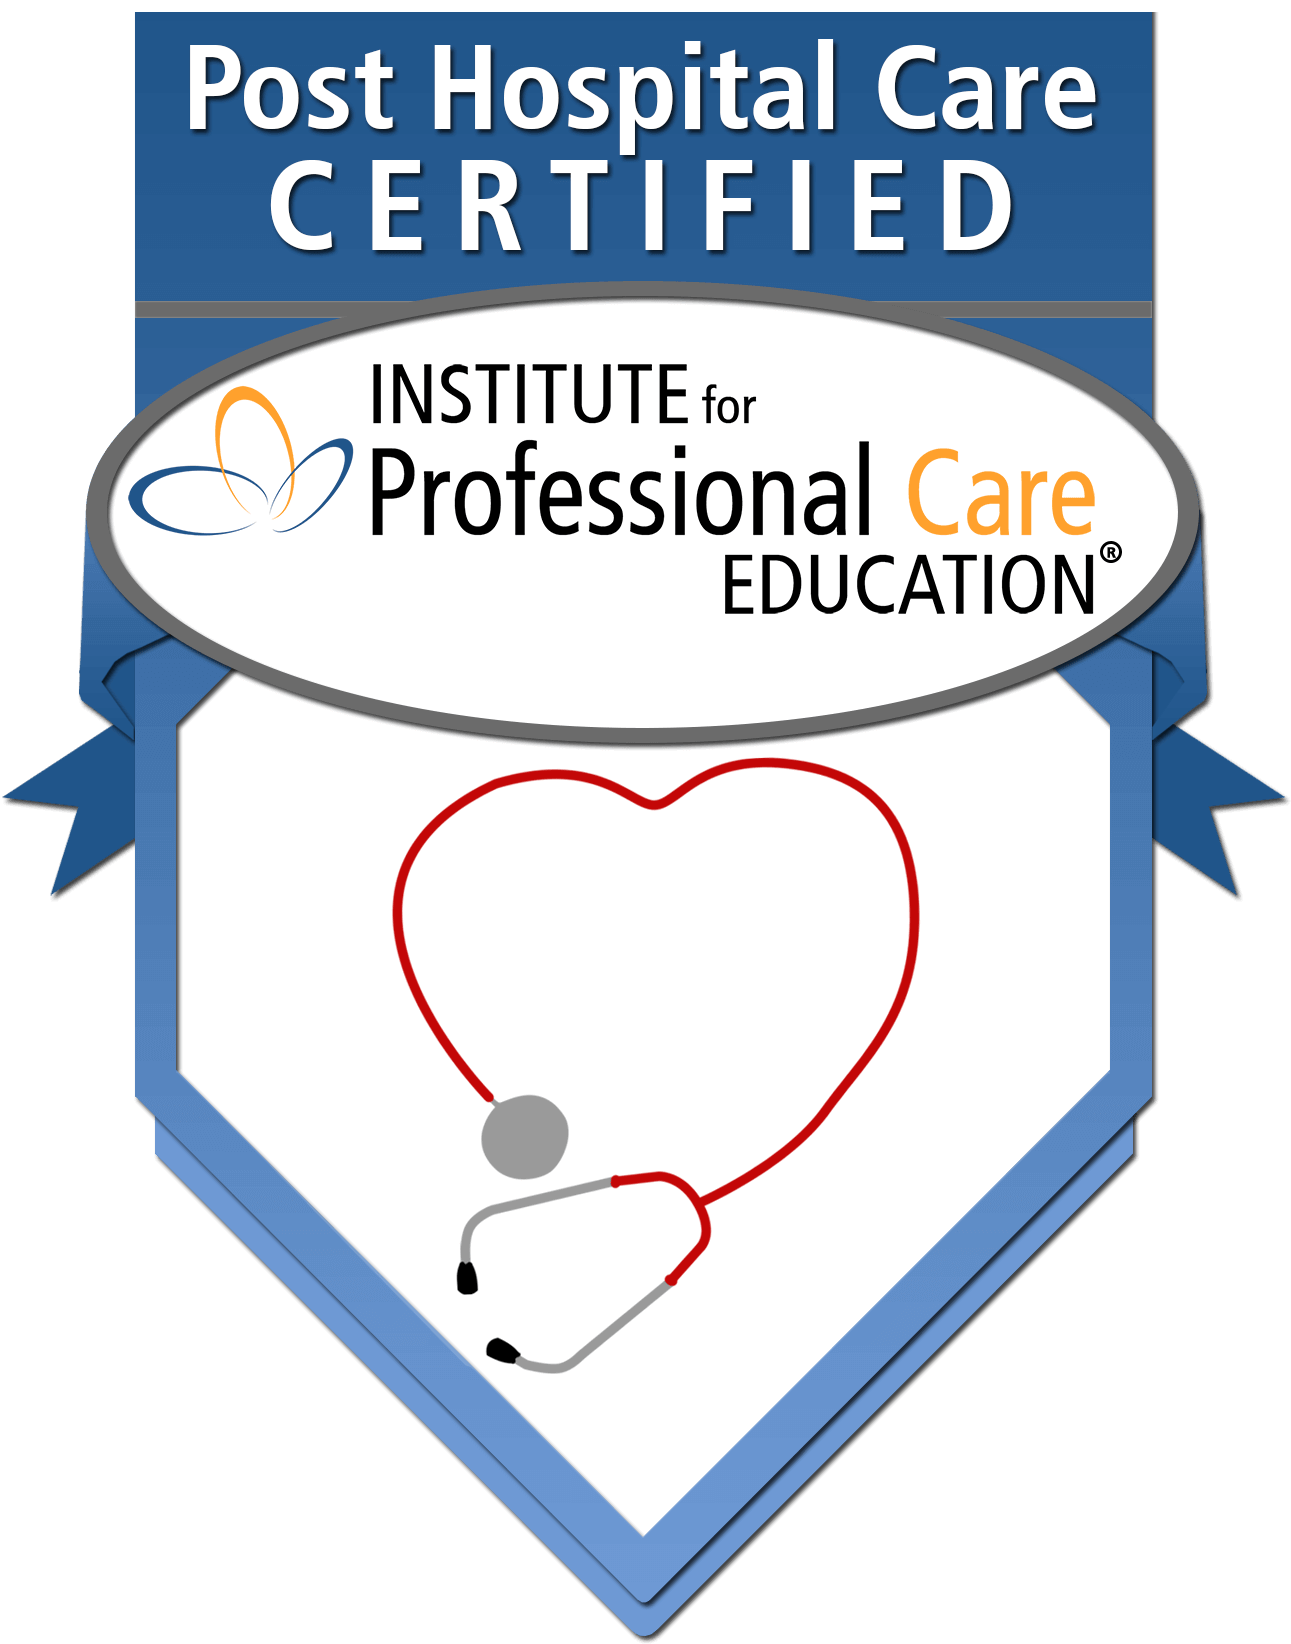 Homecare Agency is Post Hospital Care Certified by Institute for Professional Care Education